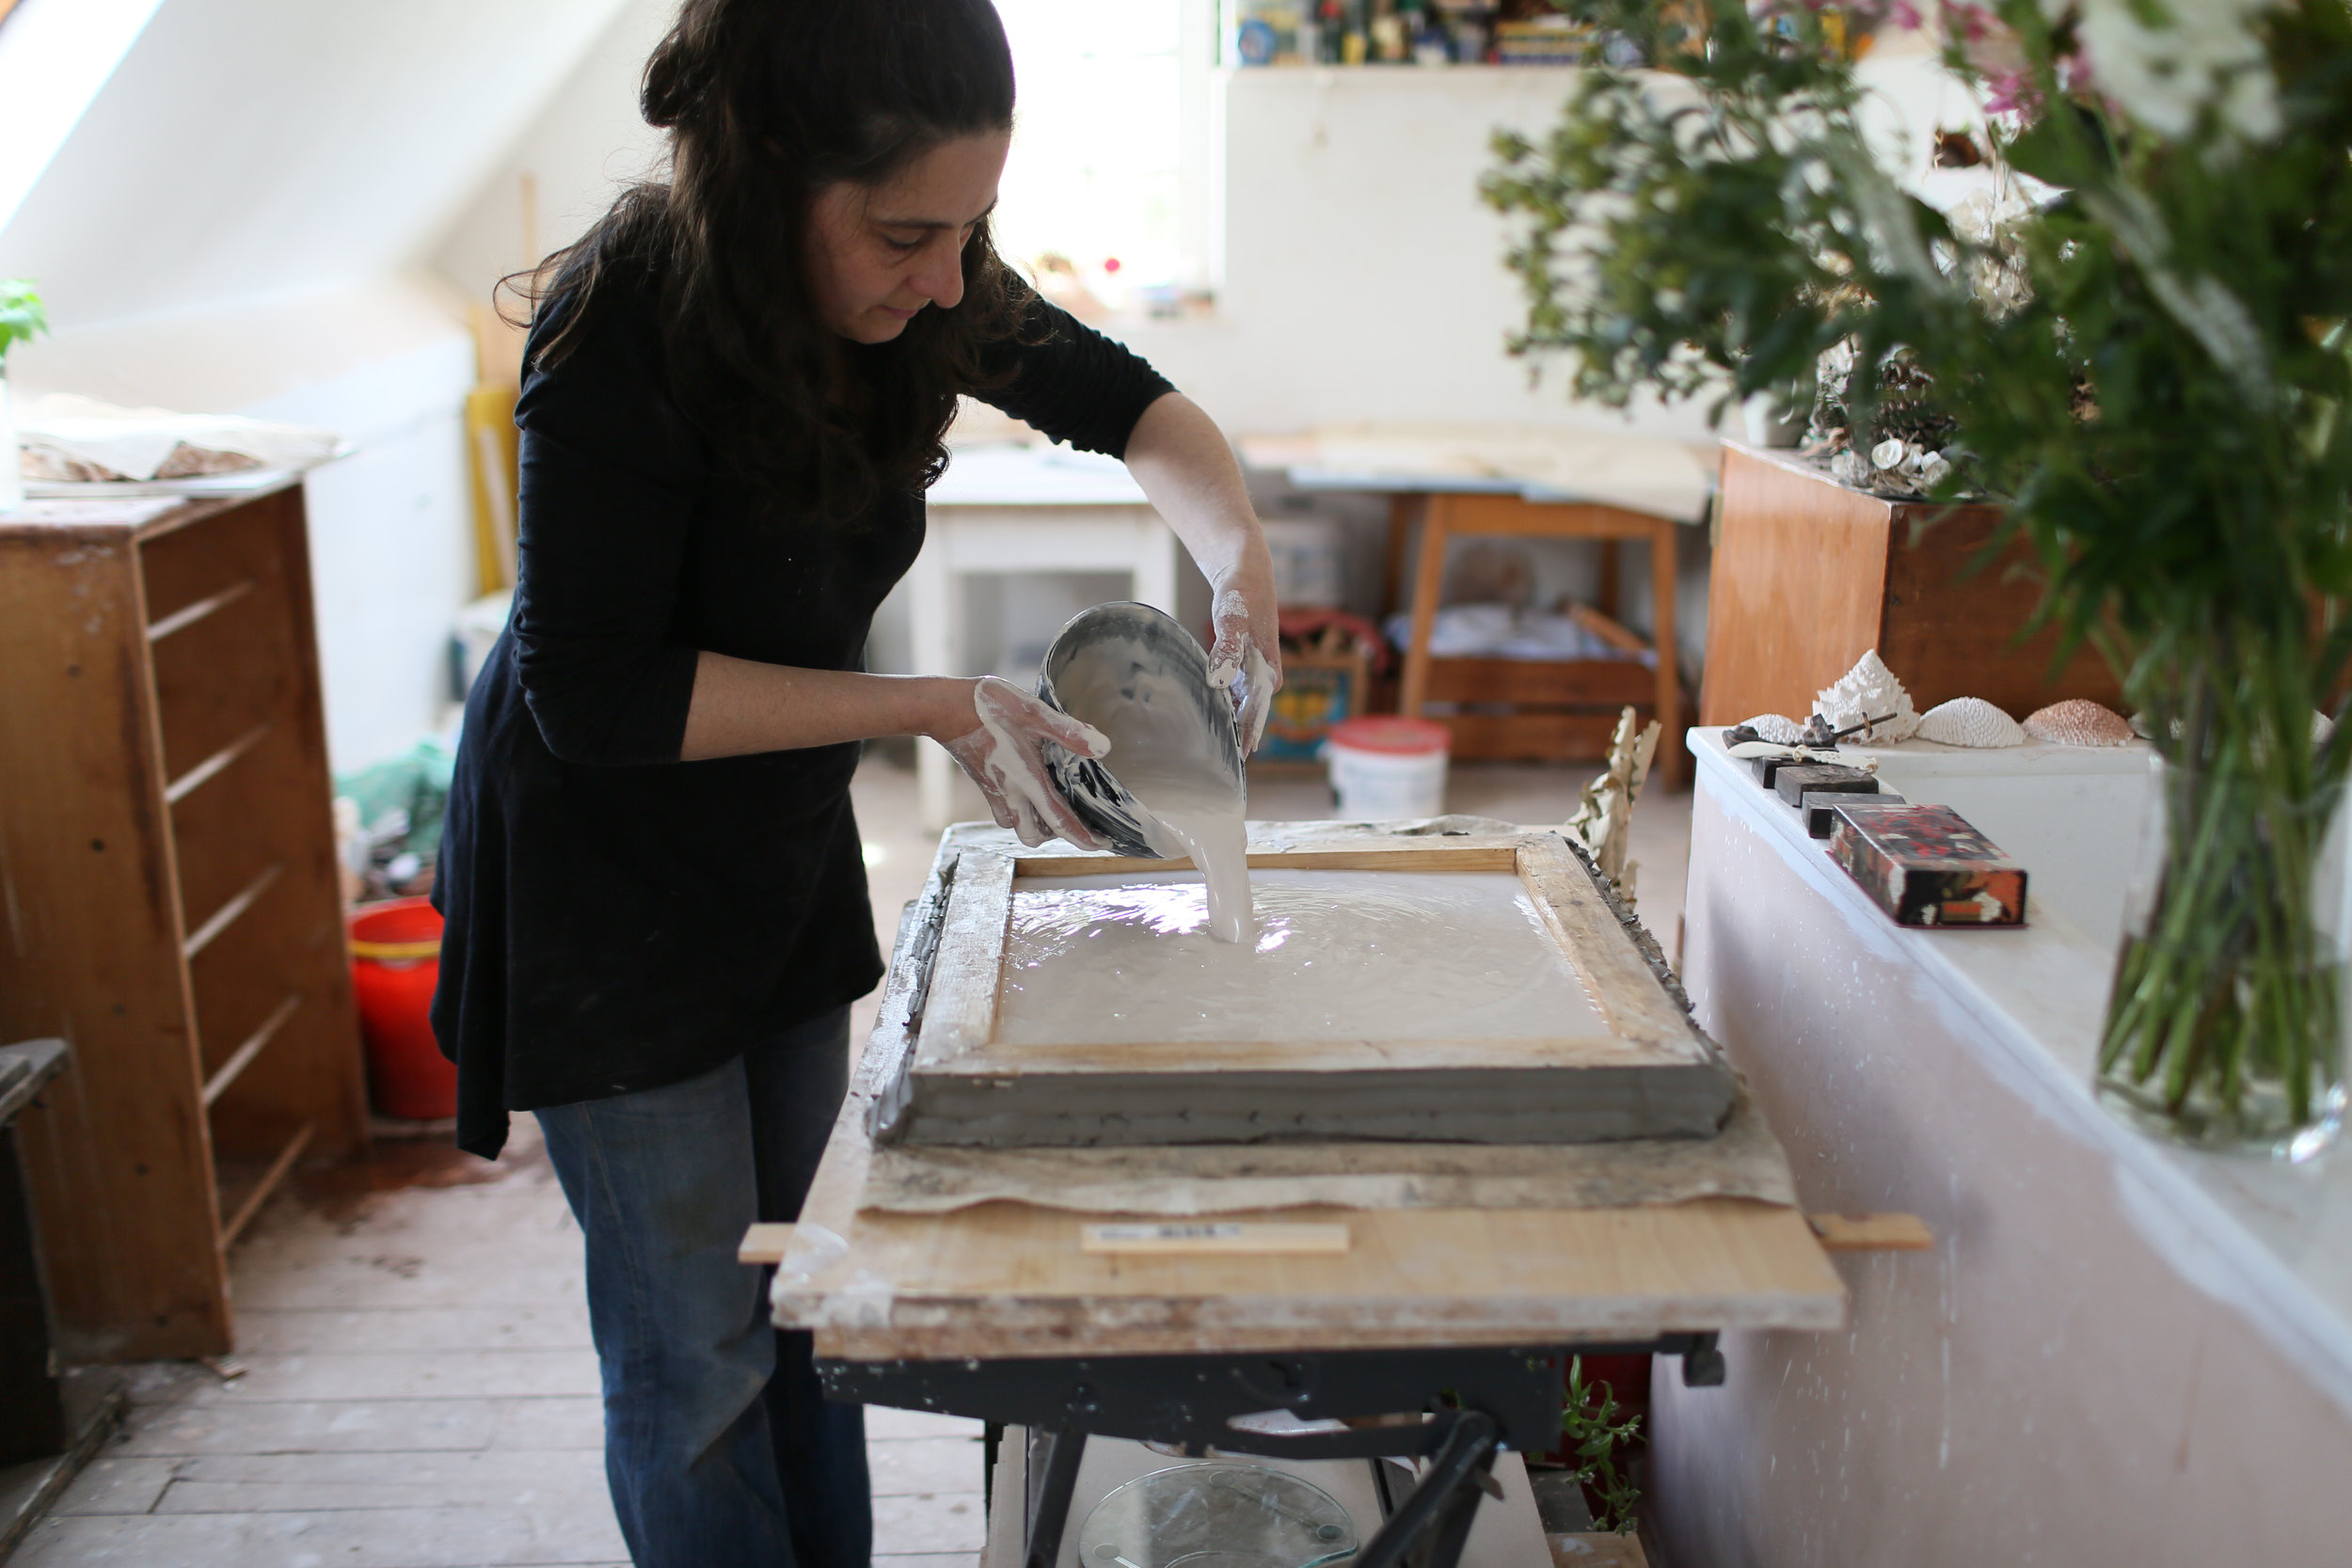 A wood frame is placed around the clay waste mold and then Rachel pours plaster into the cavity. Photo by Gerard Wiseman,courtesy of the artist.